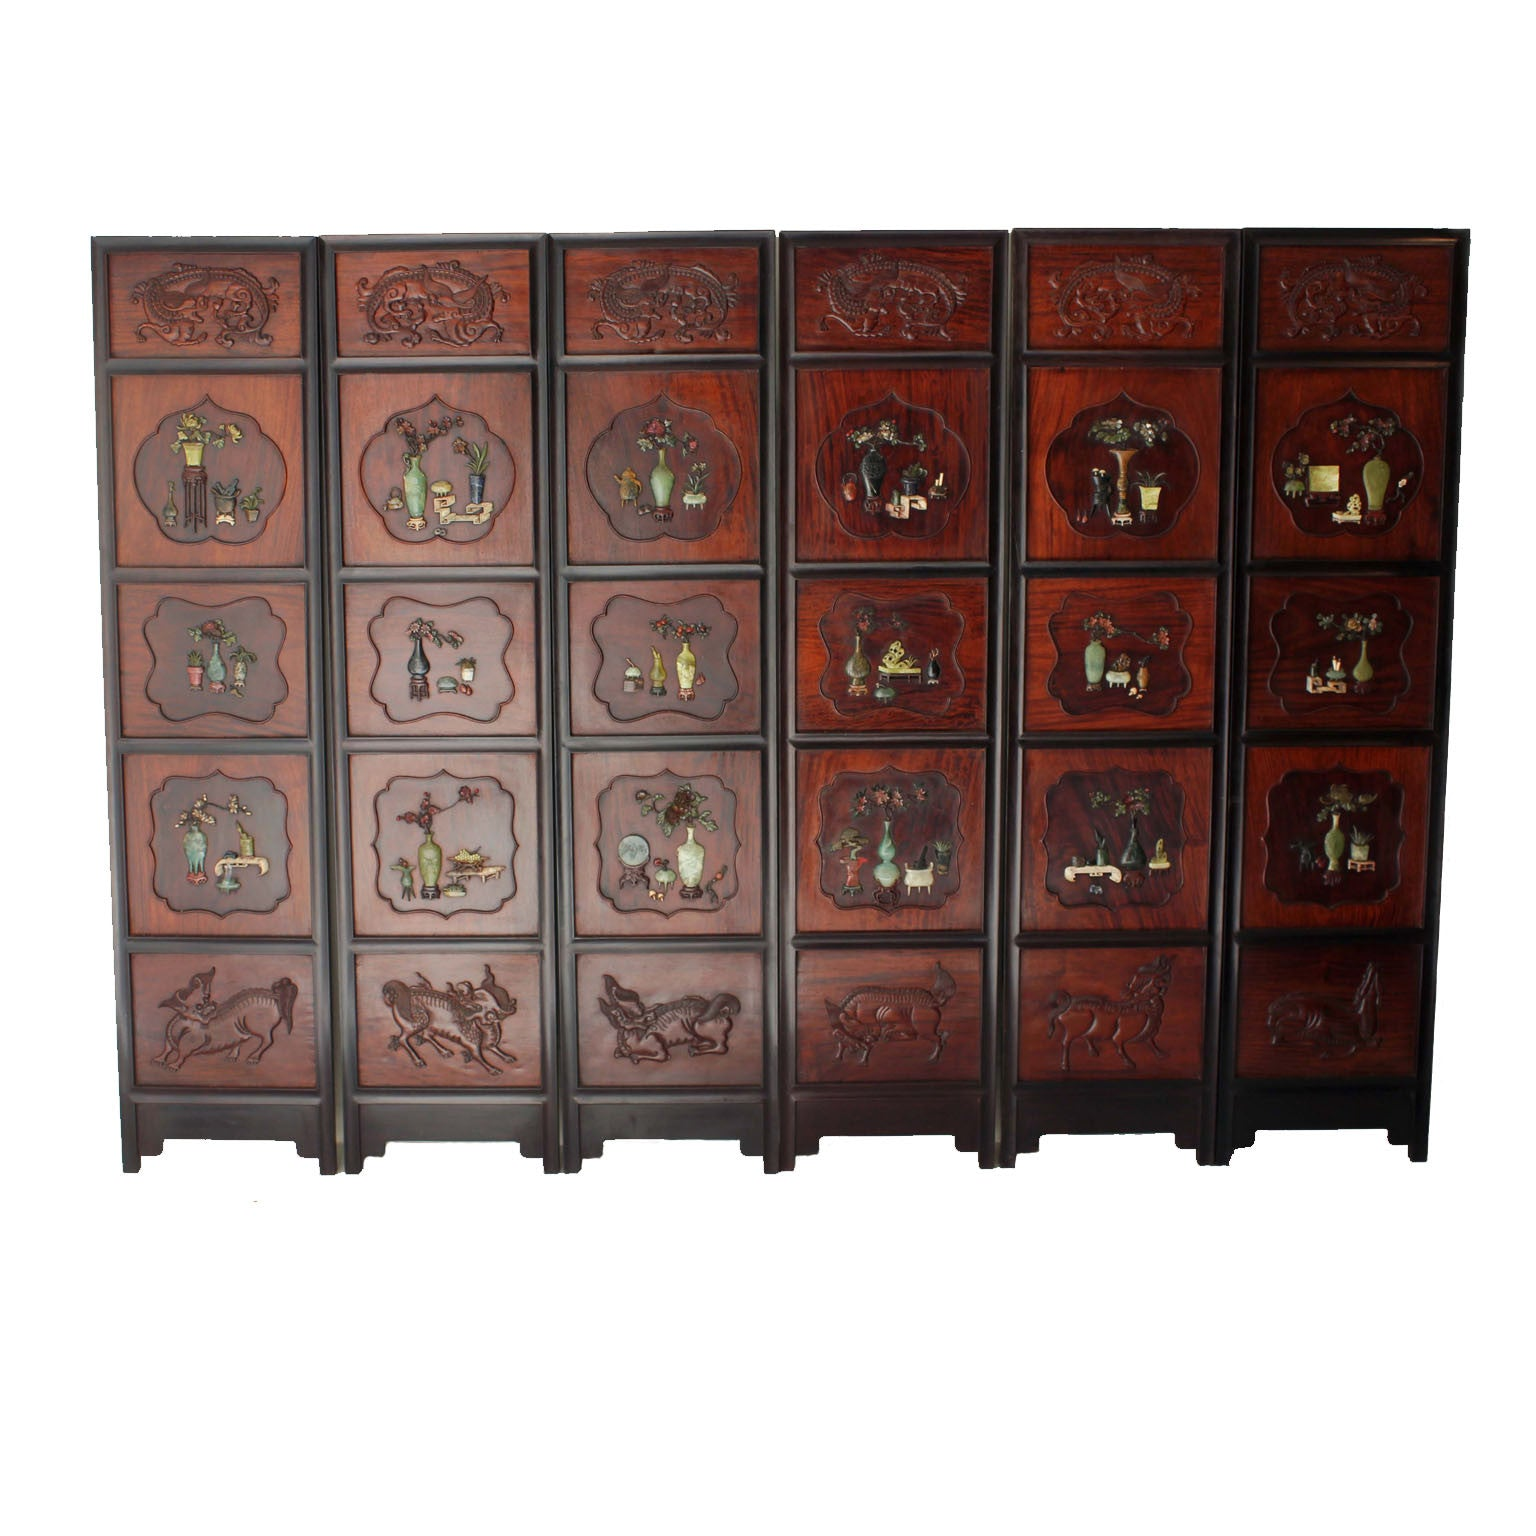 Six panel Chinese hardstone mounted timber Screen